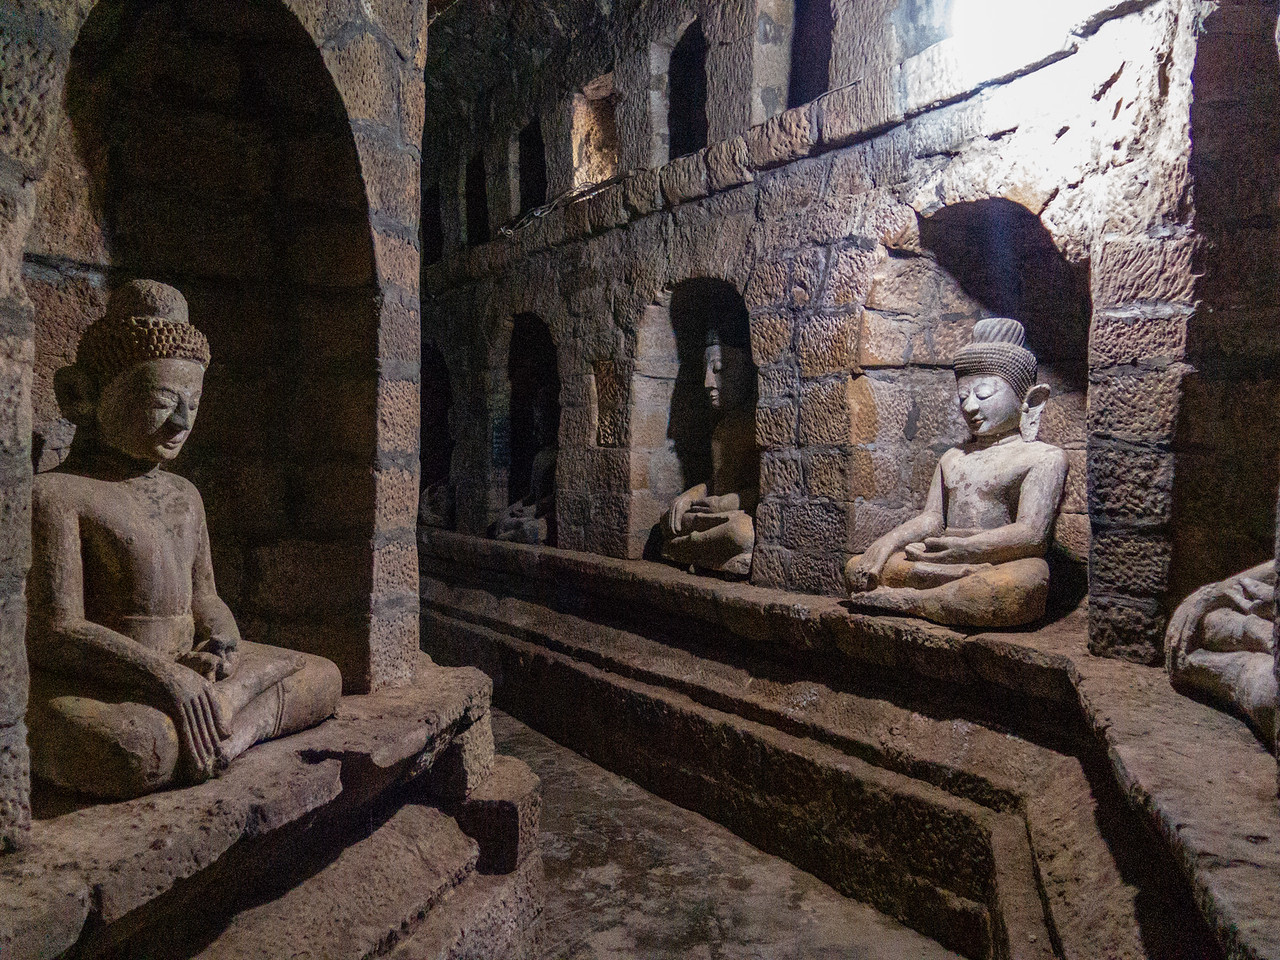 Temple in Mrauk U, Burma